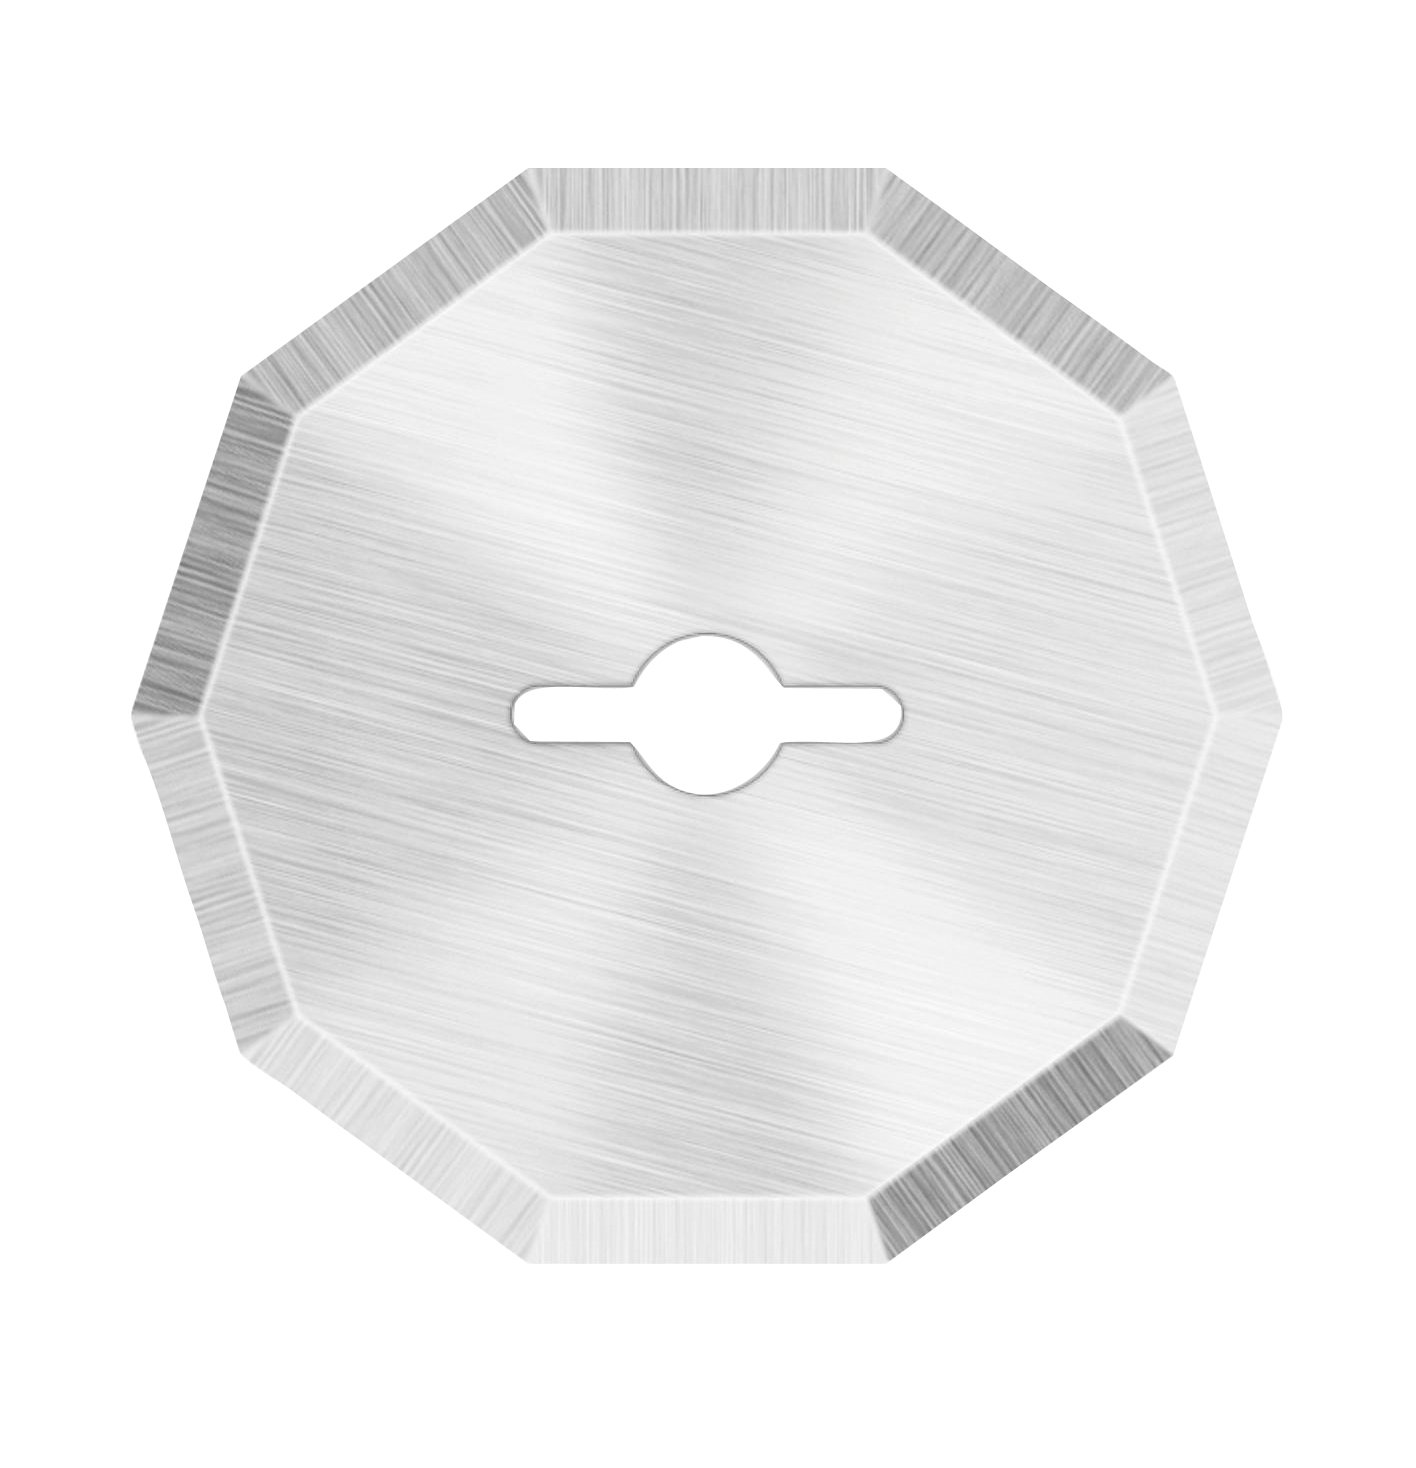 WORX WA2300 ZipSnip Replacement Blades for RC2600K,RC2601, RC2602, WX080L, WX081L (2 Pack) by WORX